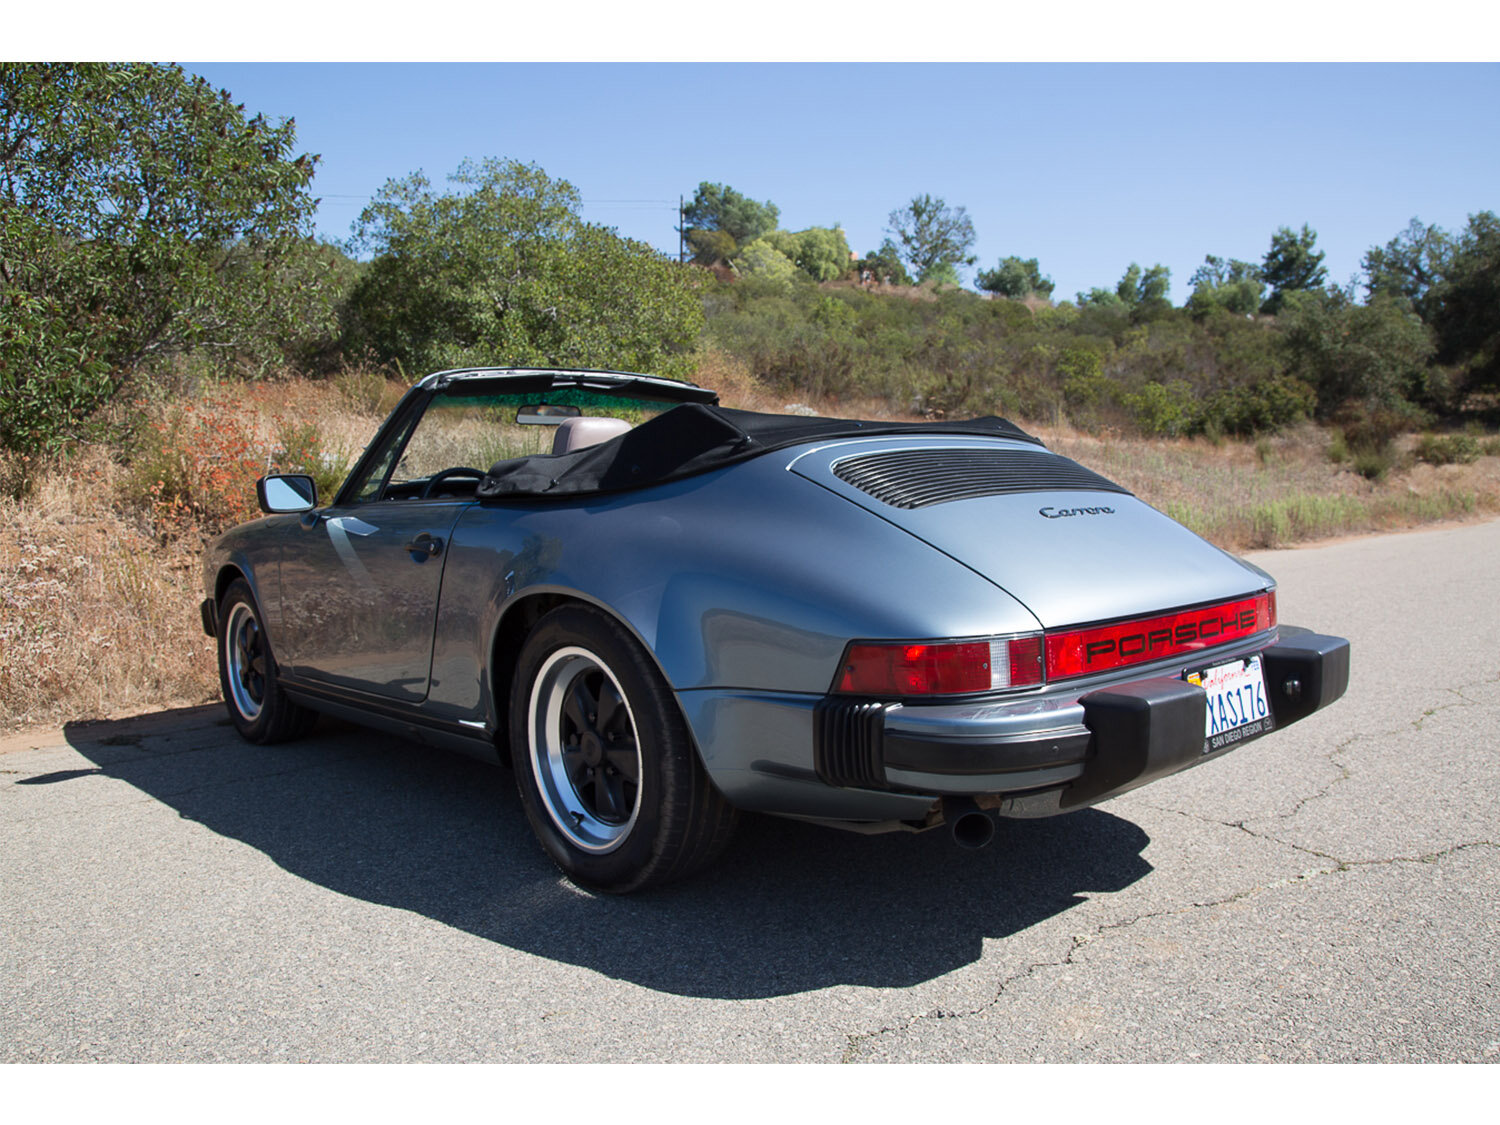 1984-carrera-cabriolet-slate-blue-911-sc-for-sale-makellos-classics_0001s_0000s_0024_1B7A6616.jpg